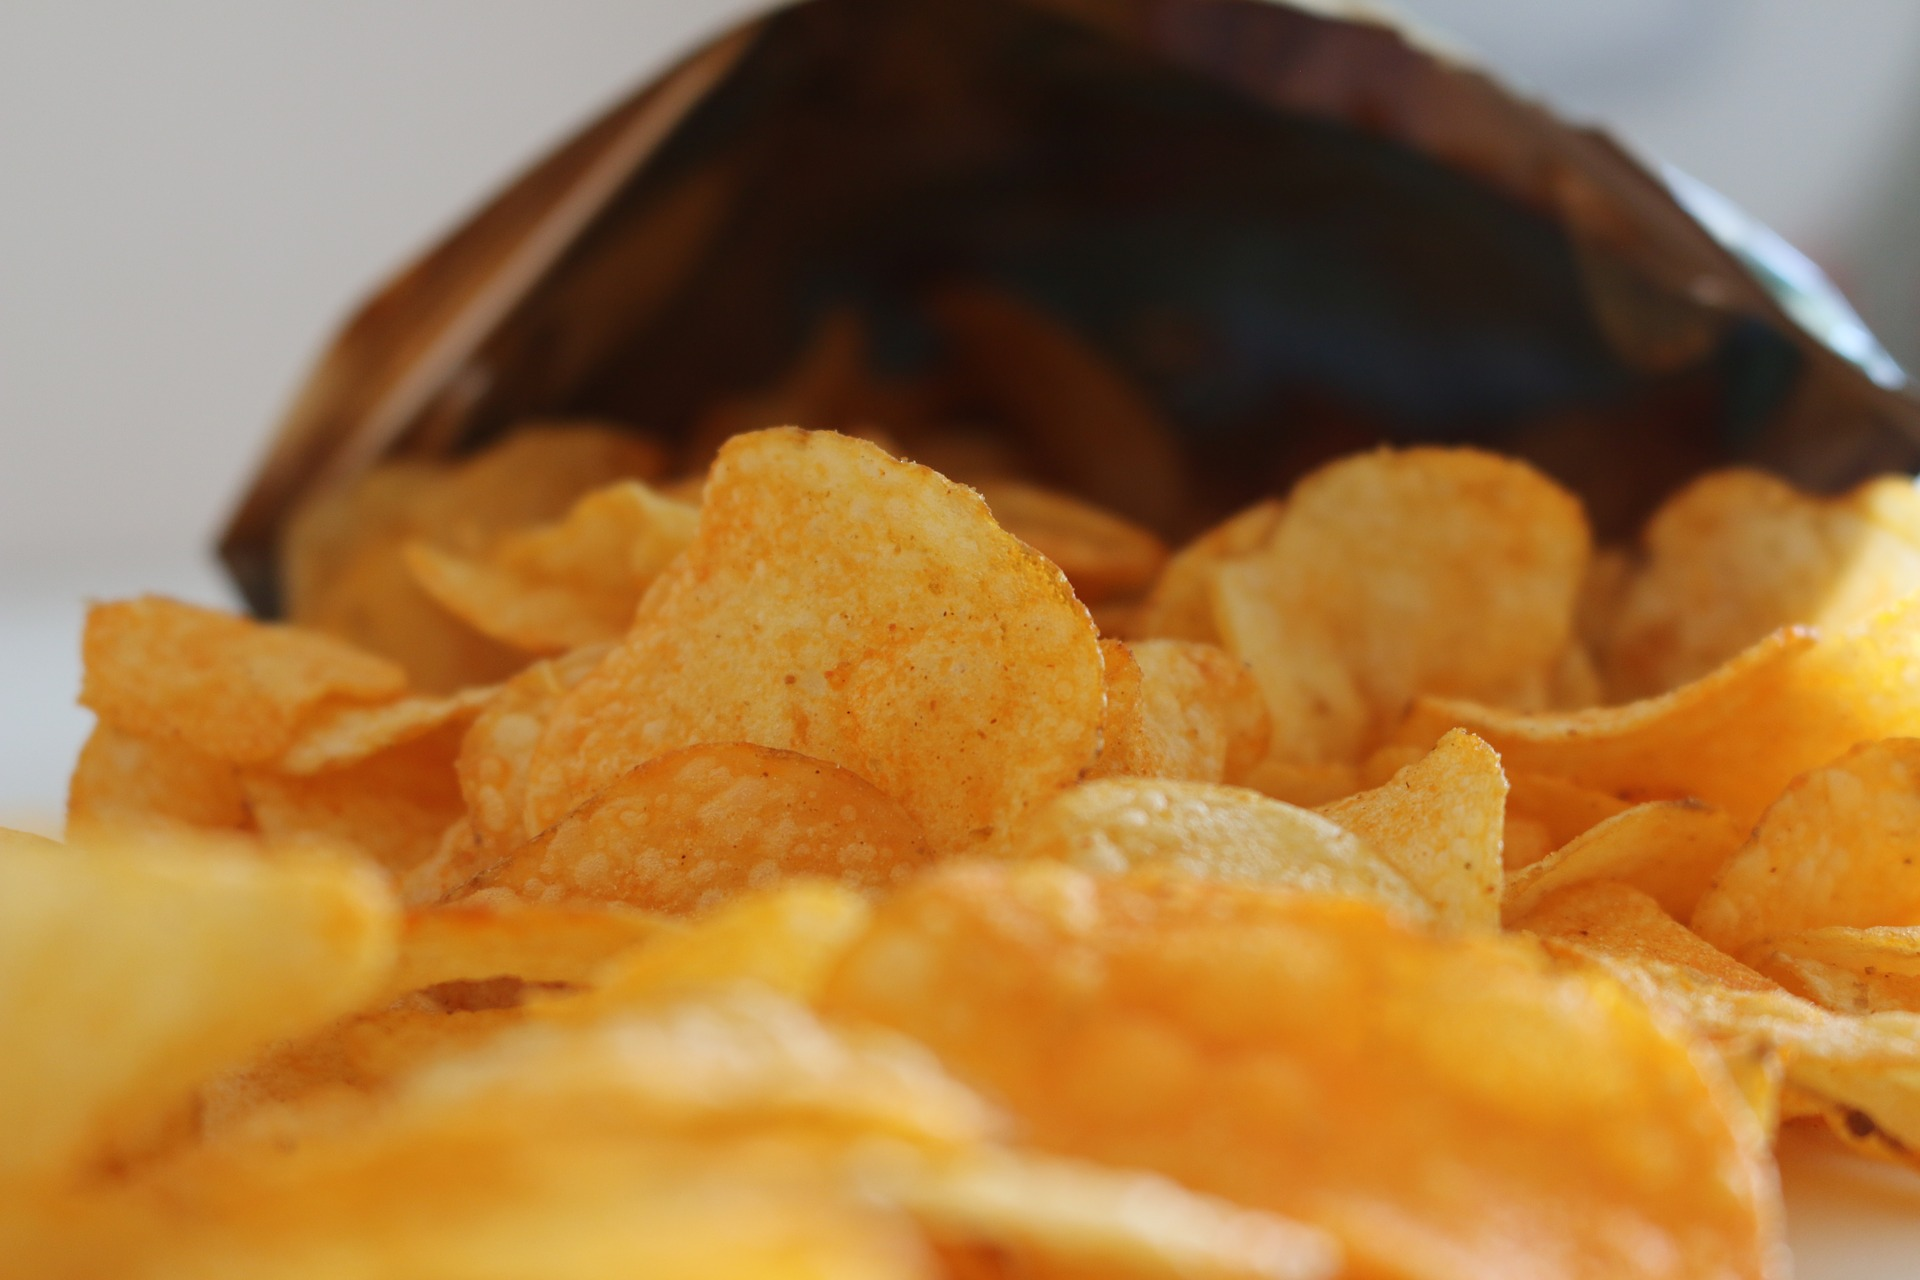 Deli Style Chips